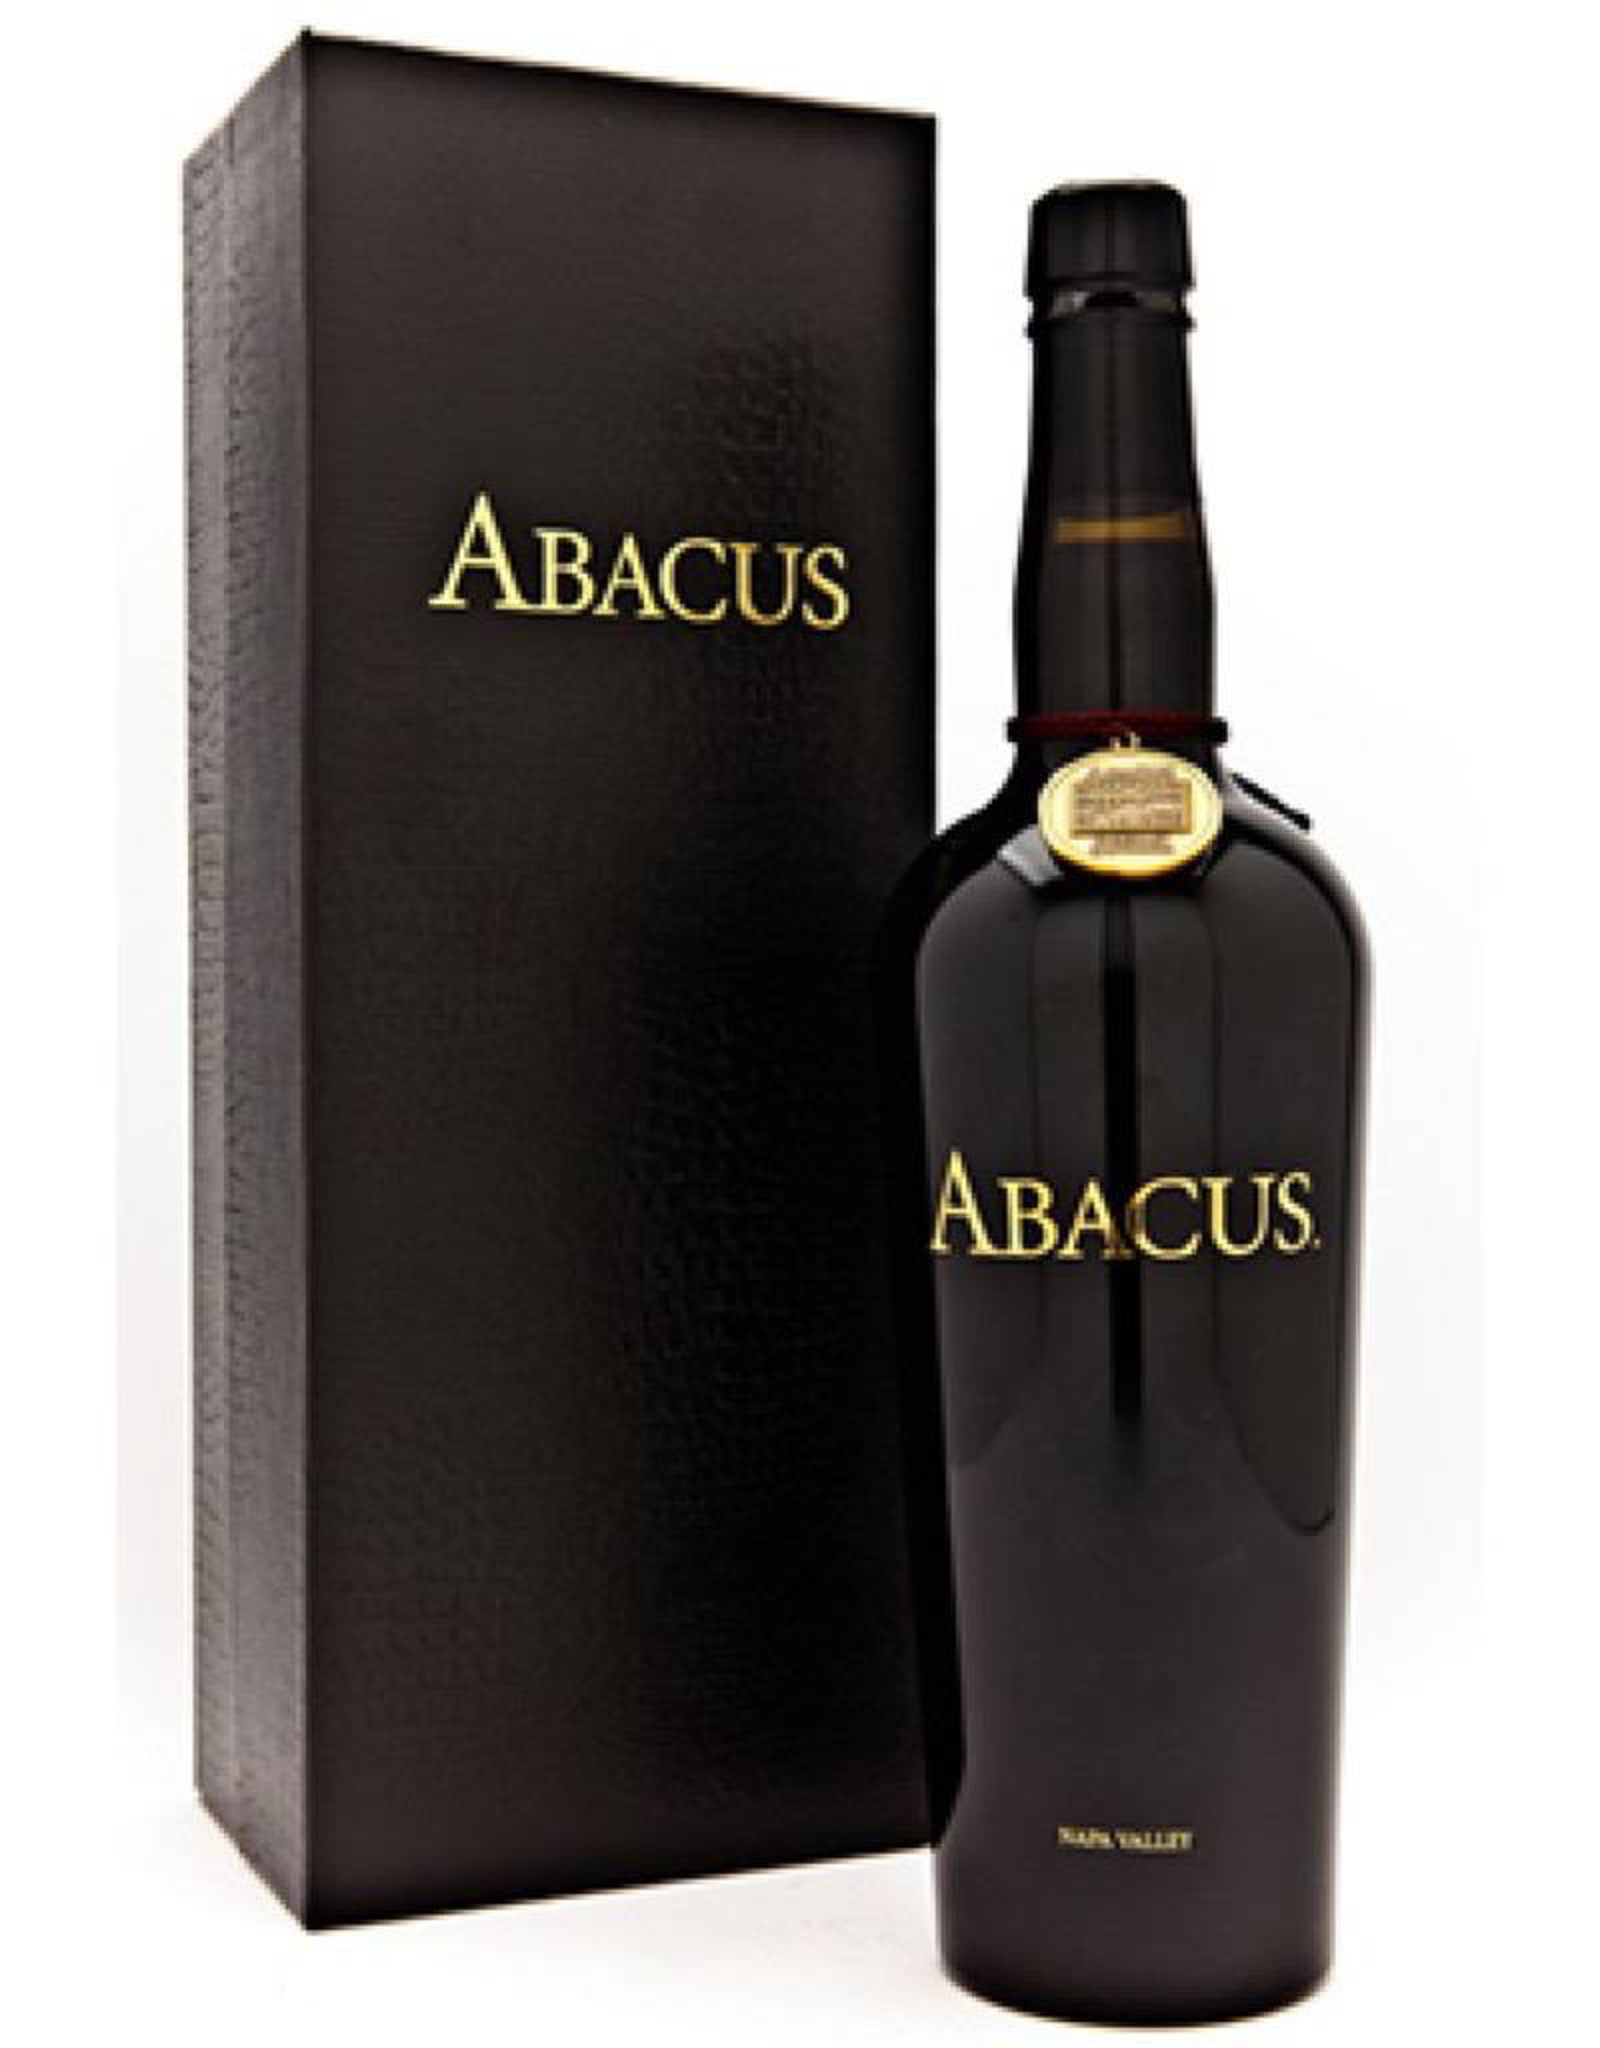 Red Wine NV, ZD Wines ABACUS XX 1992 - 2017 20th Bottling 26th Anniversary, Cabernet Sauvignon Solera Style, Rutherford, Napa Valley, California,14.5% Alc, CTnr